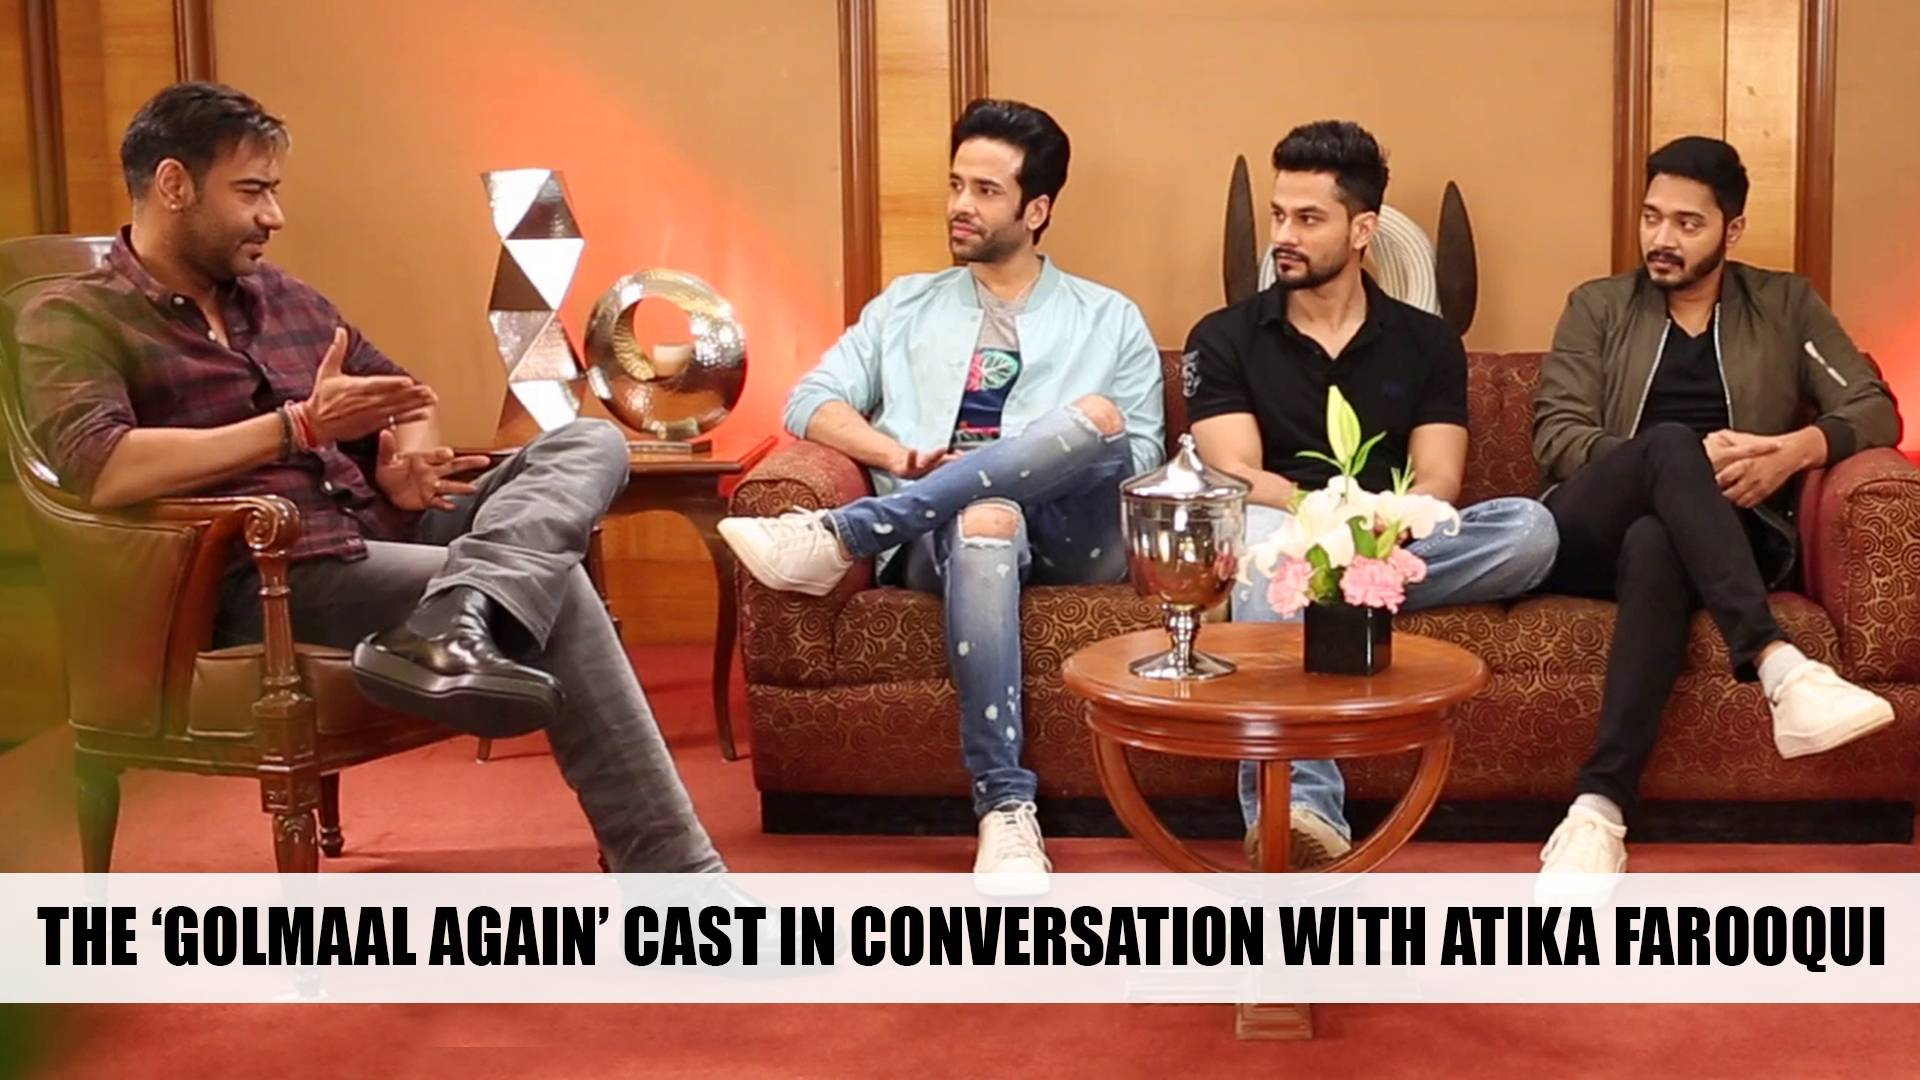 The 'Golmaal Again' cast in conversation with Atika Farooqui.